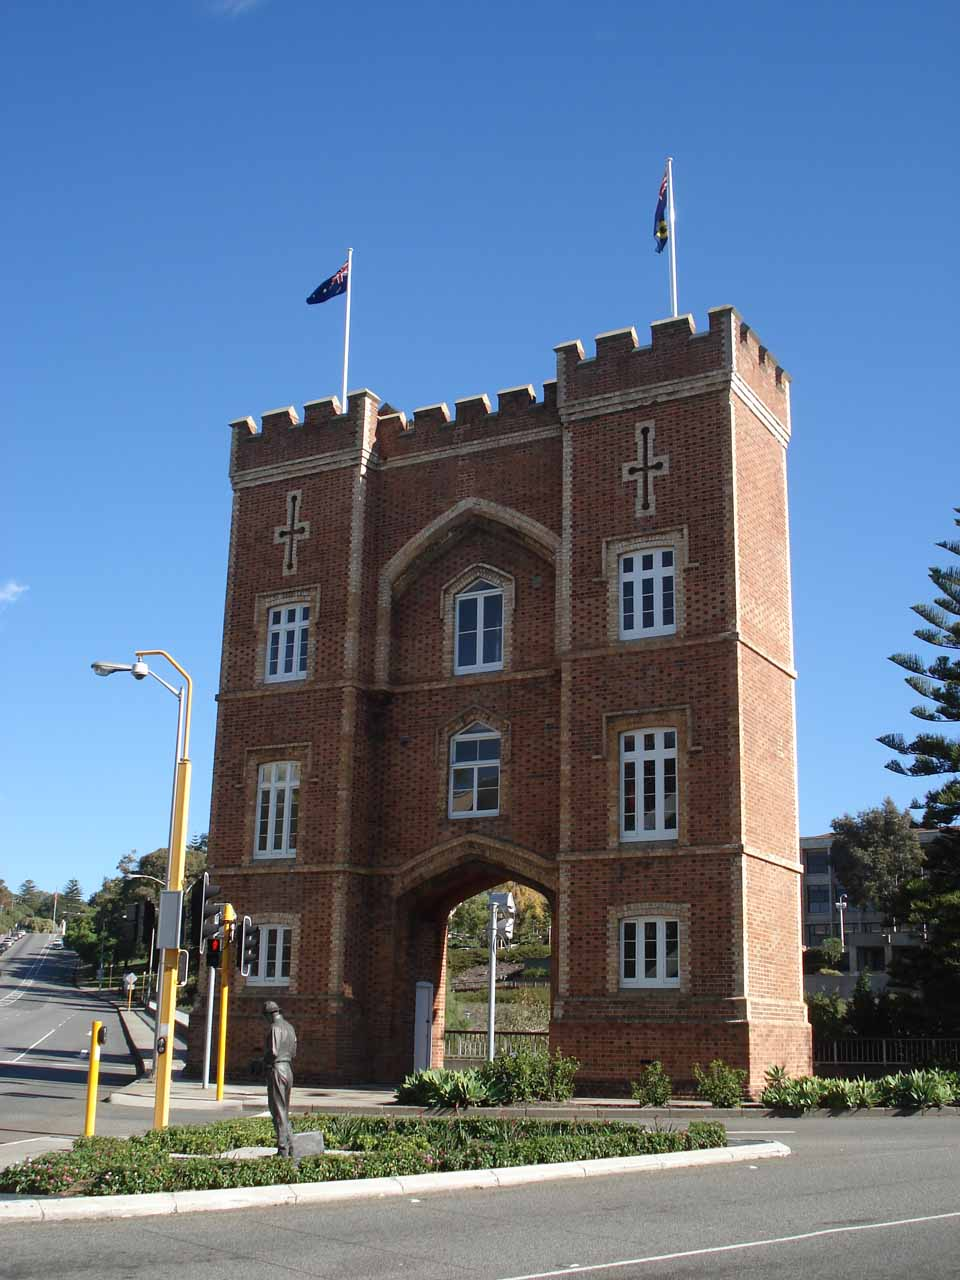 Another historical-looking building in Perth